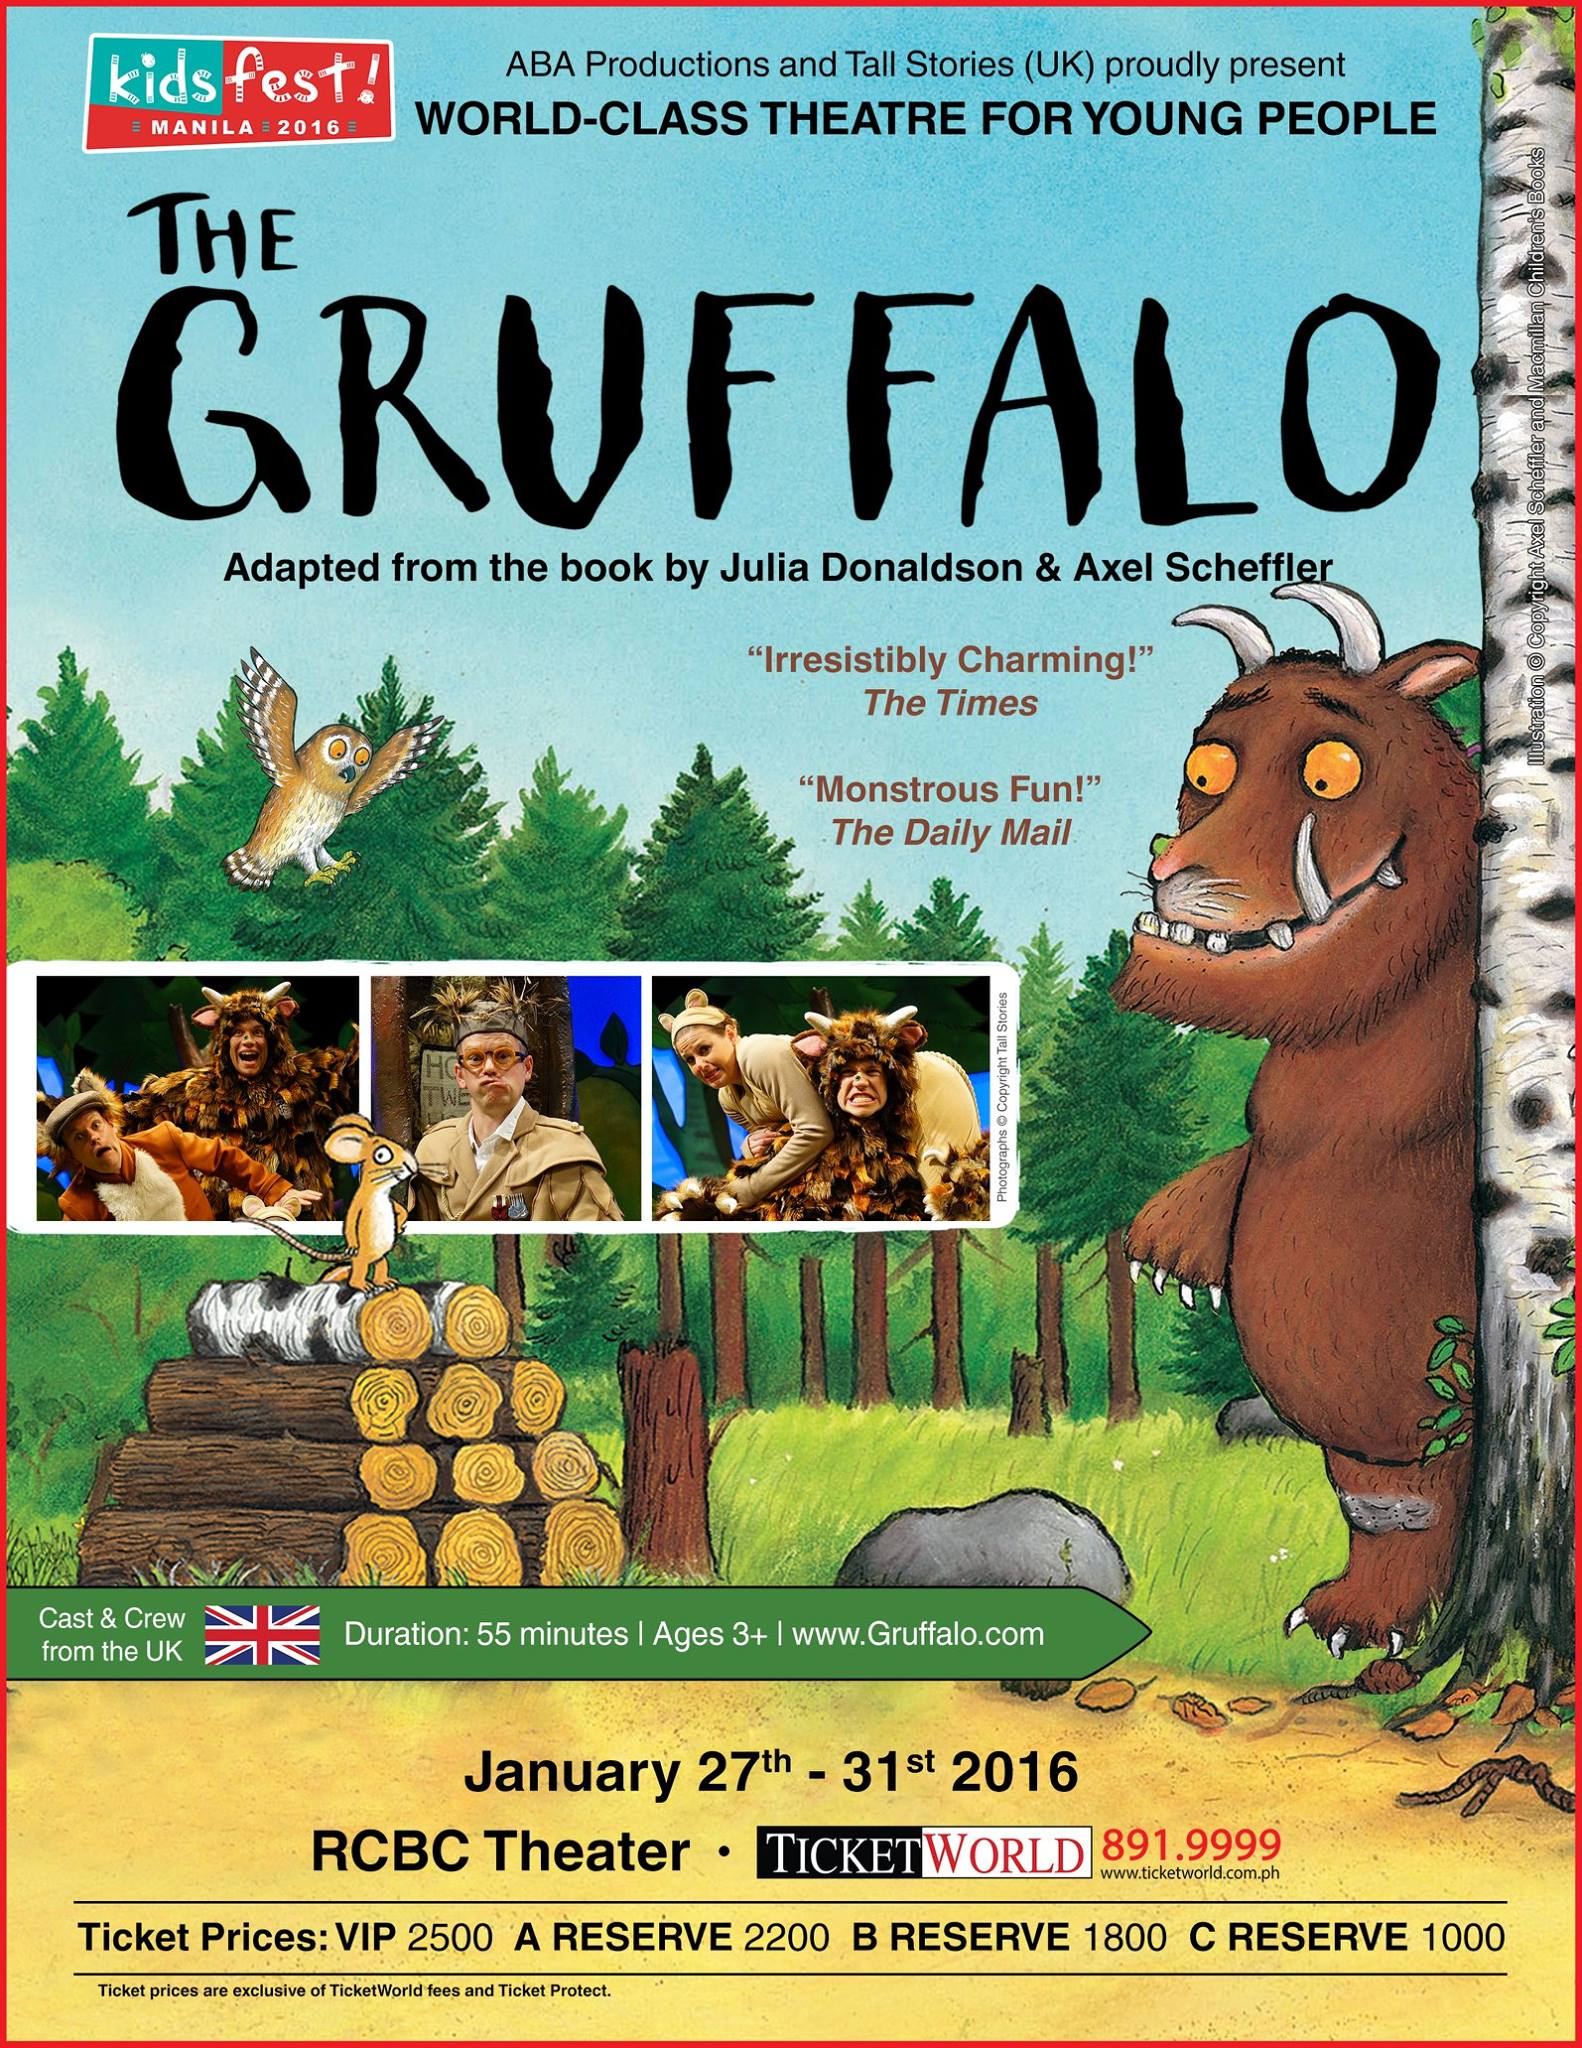 the-gruffalo-live-in-manila-2016